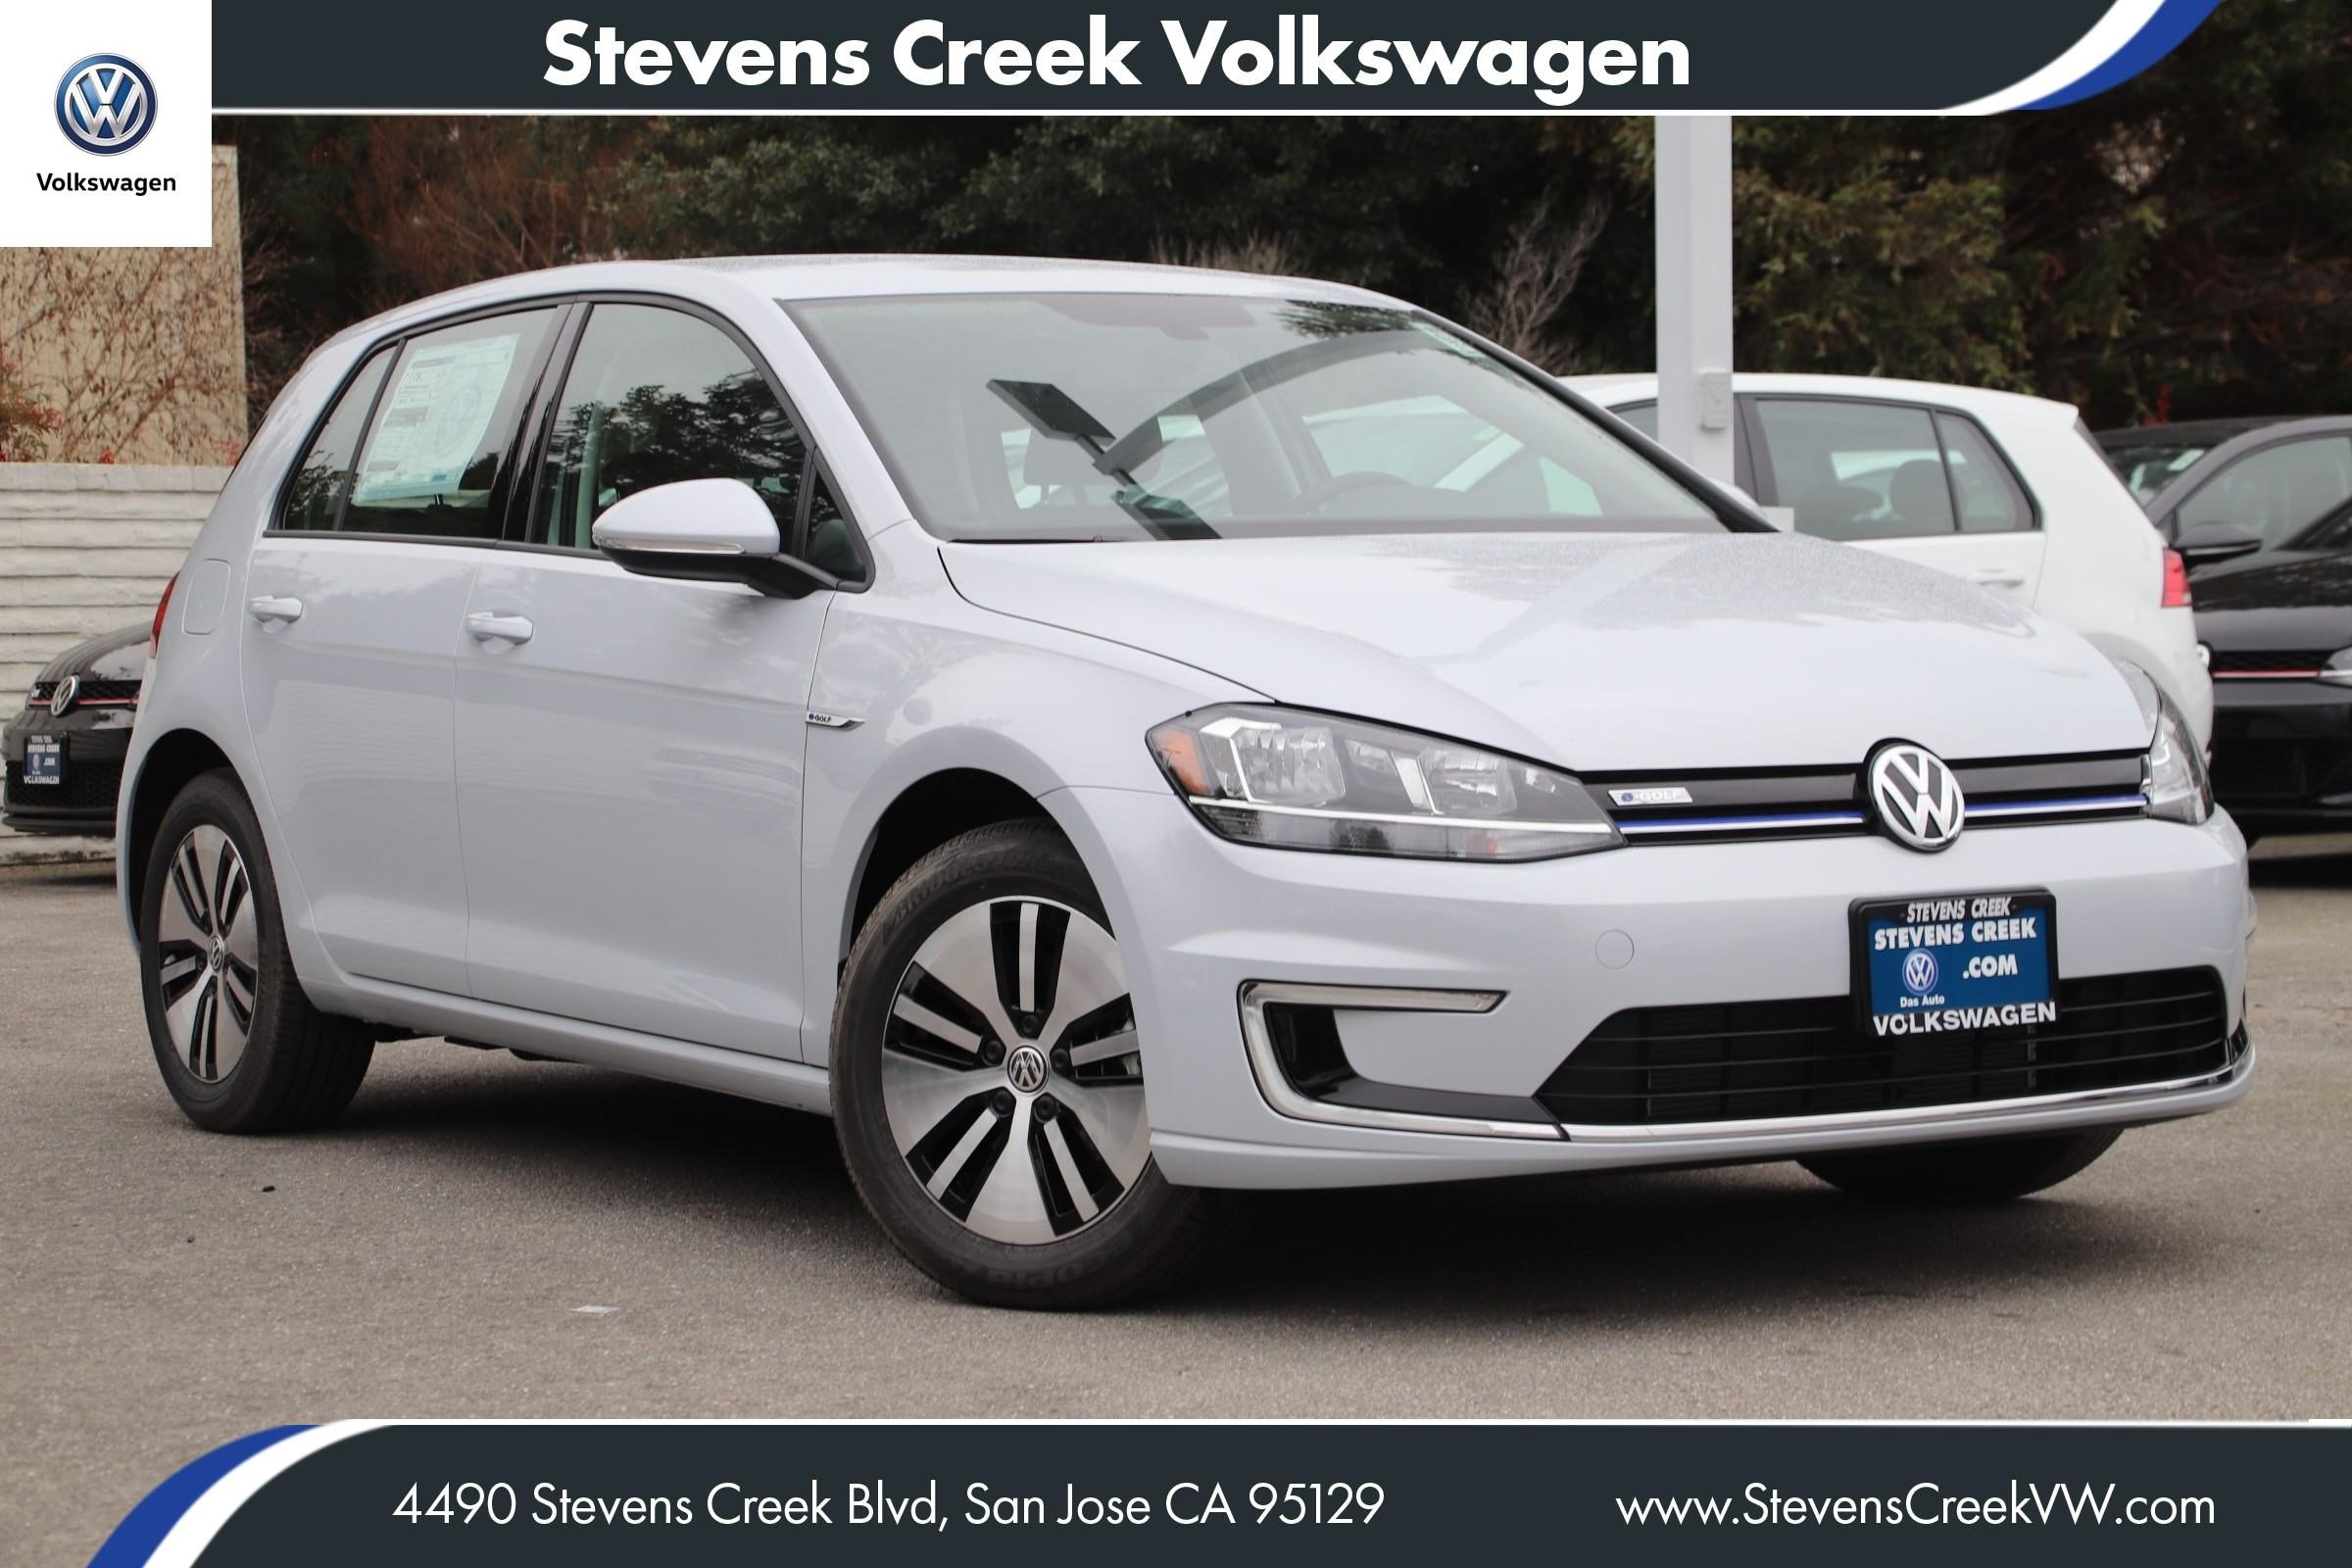 New 2019 Volkswagen e-Golf SE FWD Hatchback VIN KW902668 MSRP $33,575